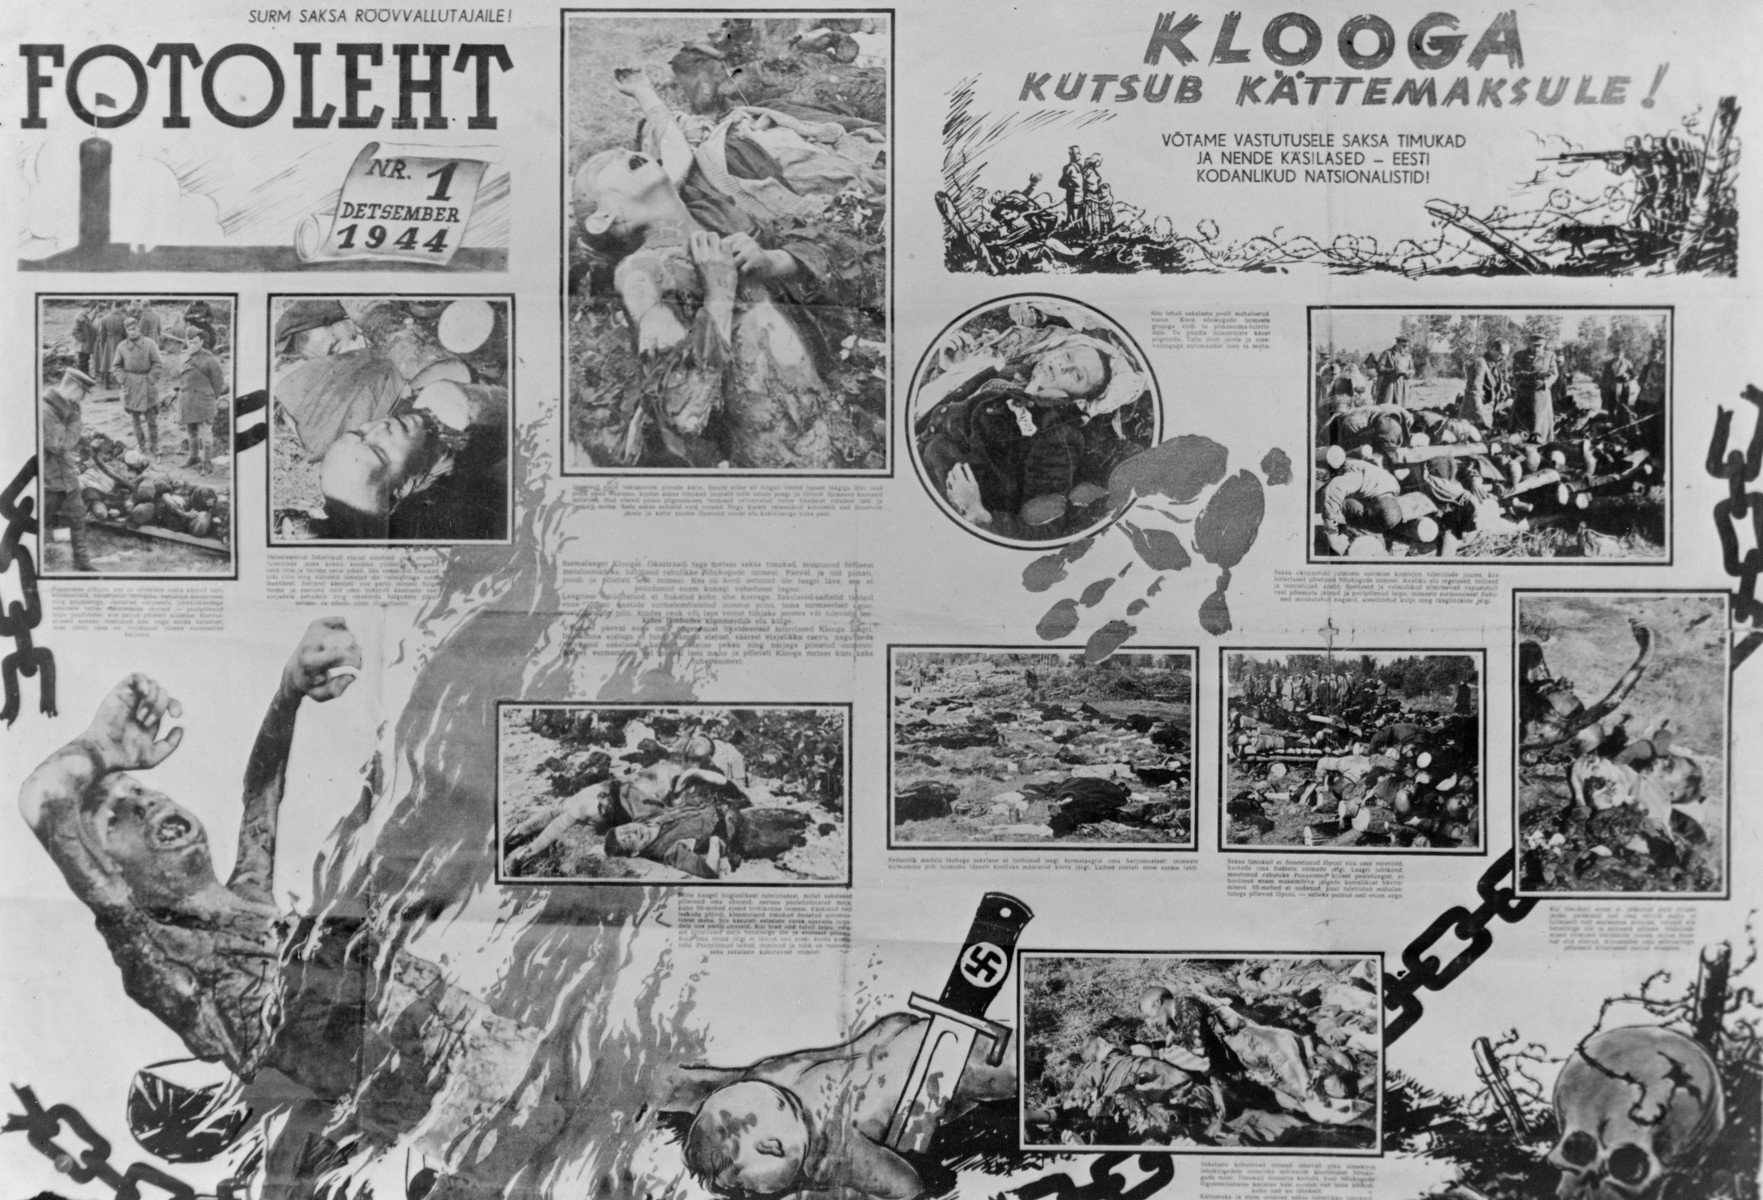 An Estonian poster that includes photographs and drawings depicting the atrocities that took place in the Klooga concentration camp.